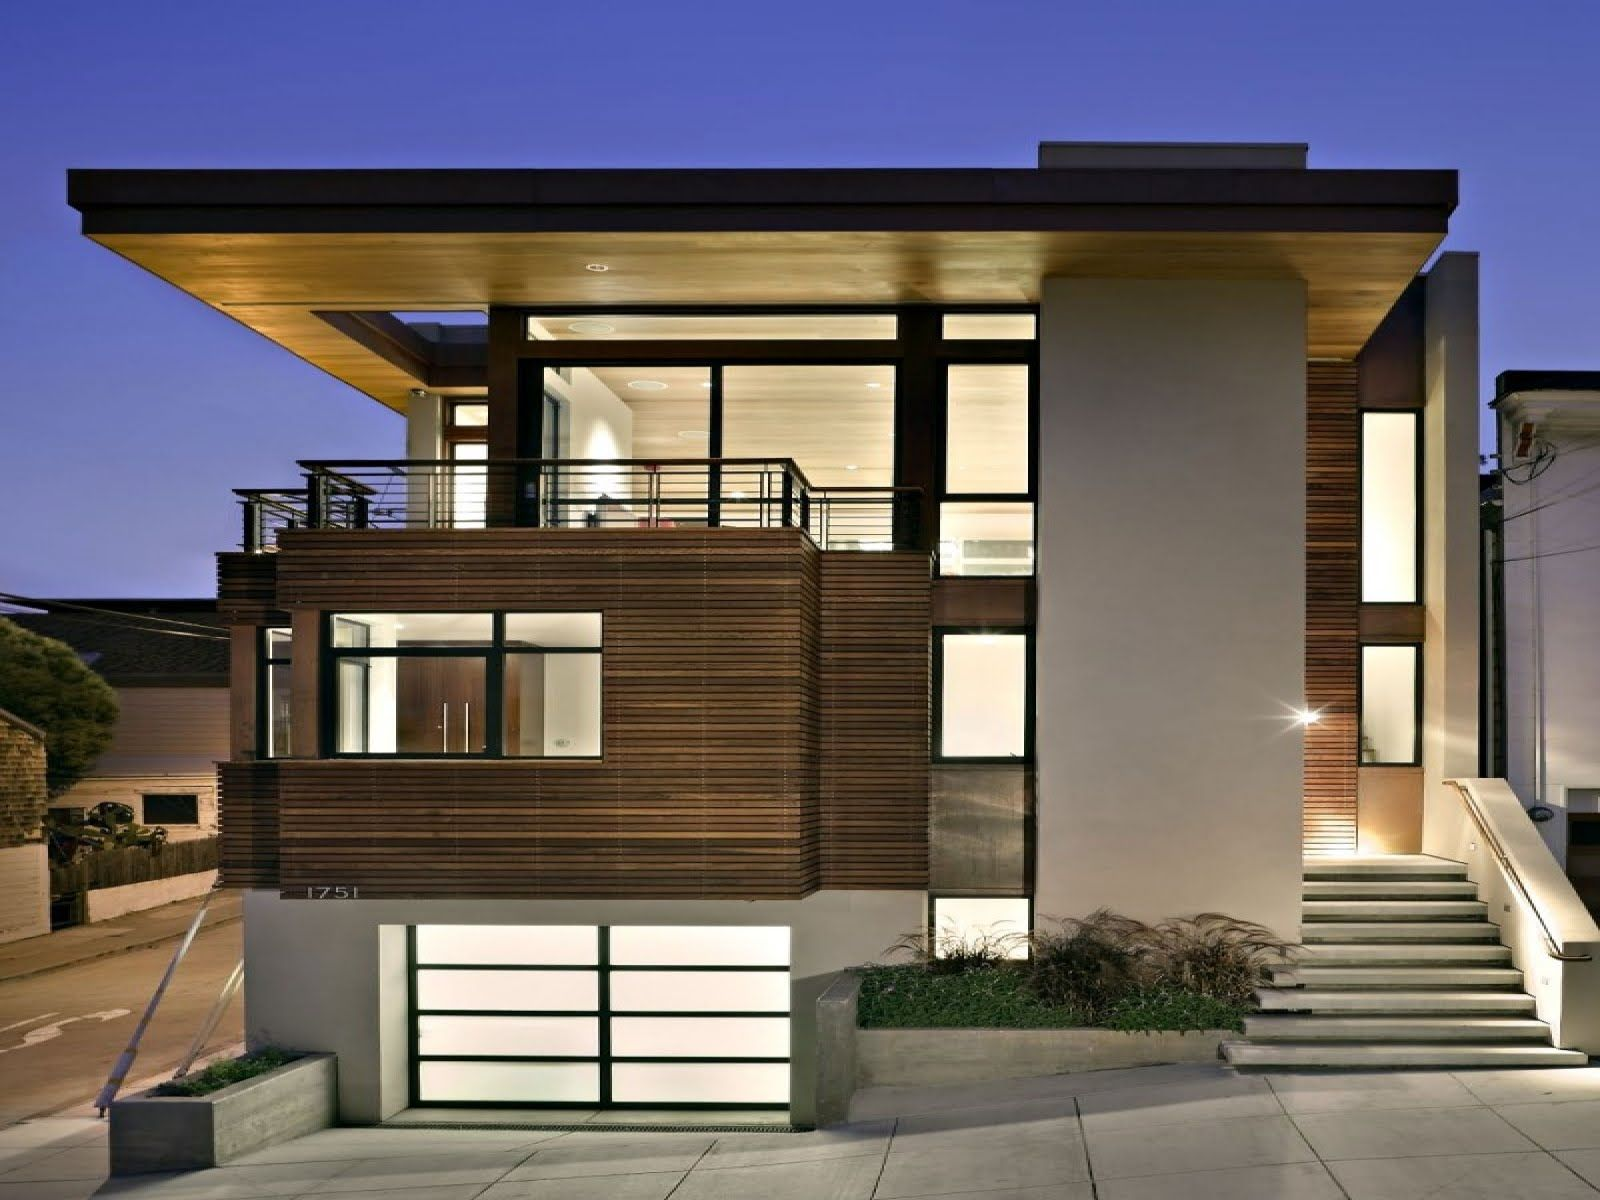 Small modern house design square house plan beautiful modern small hou